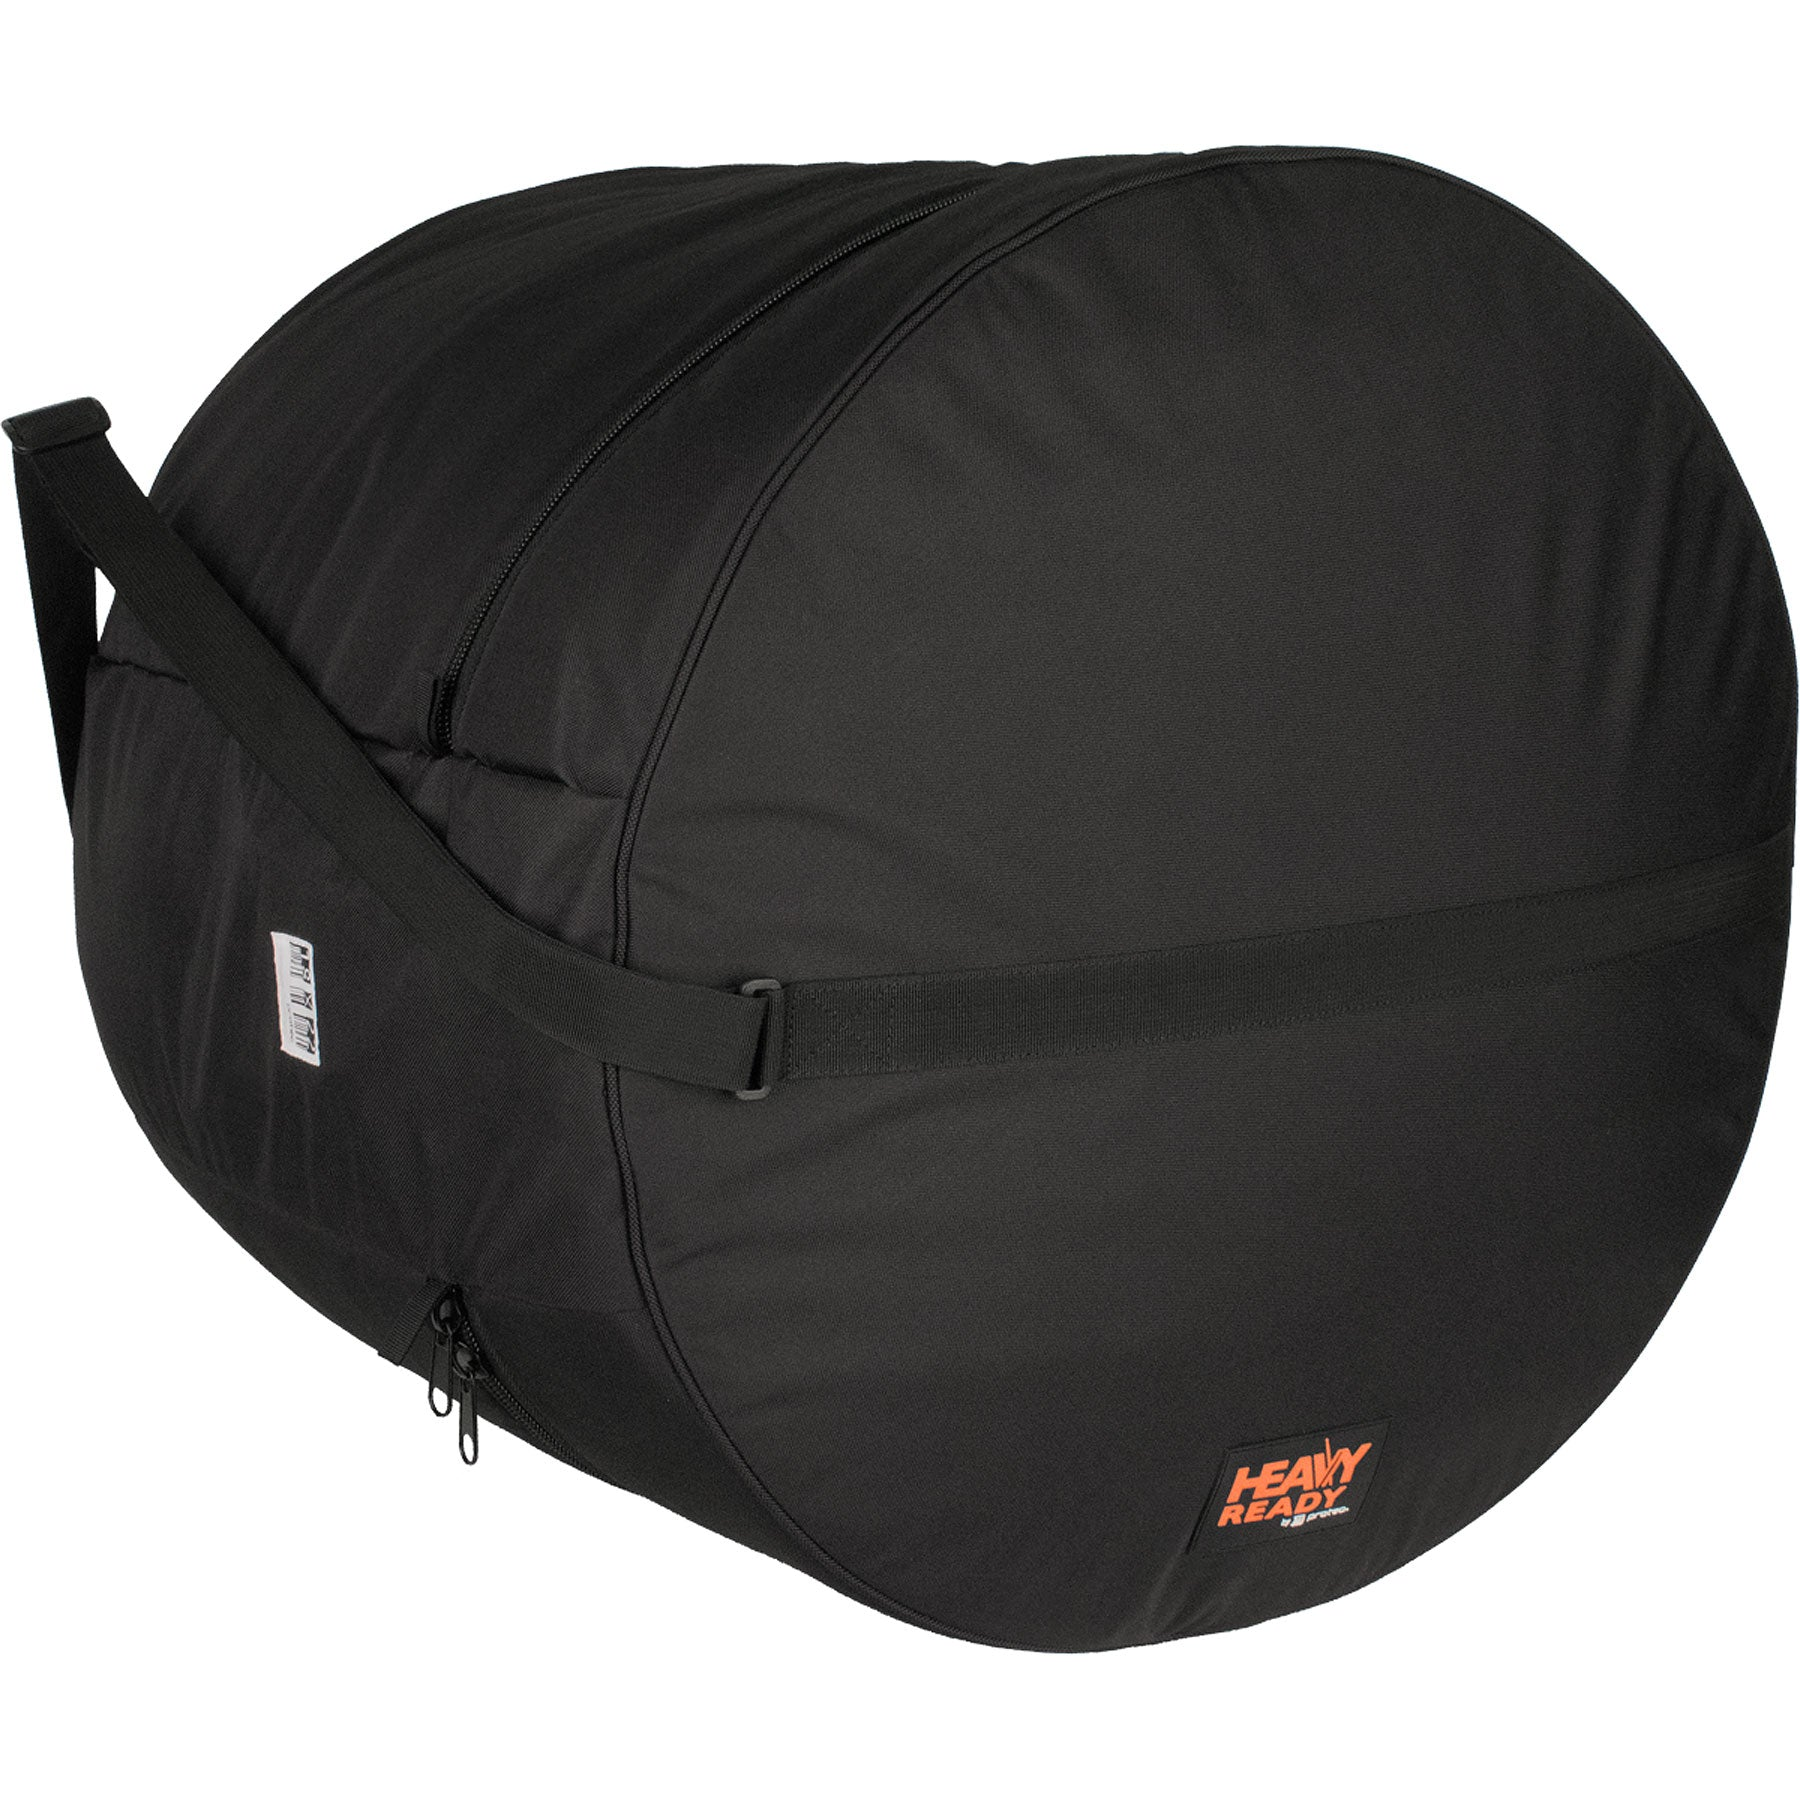 PROTEC Heavy Ready Padded Kick Drum Bag 20x18